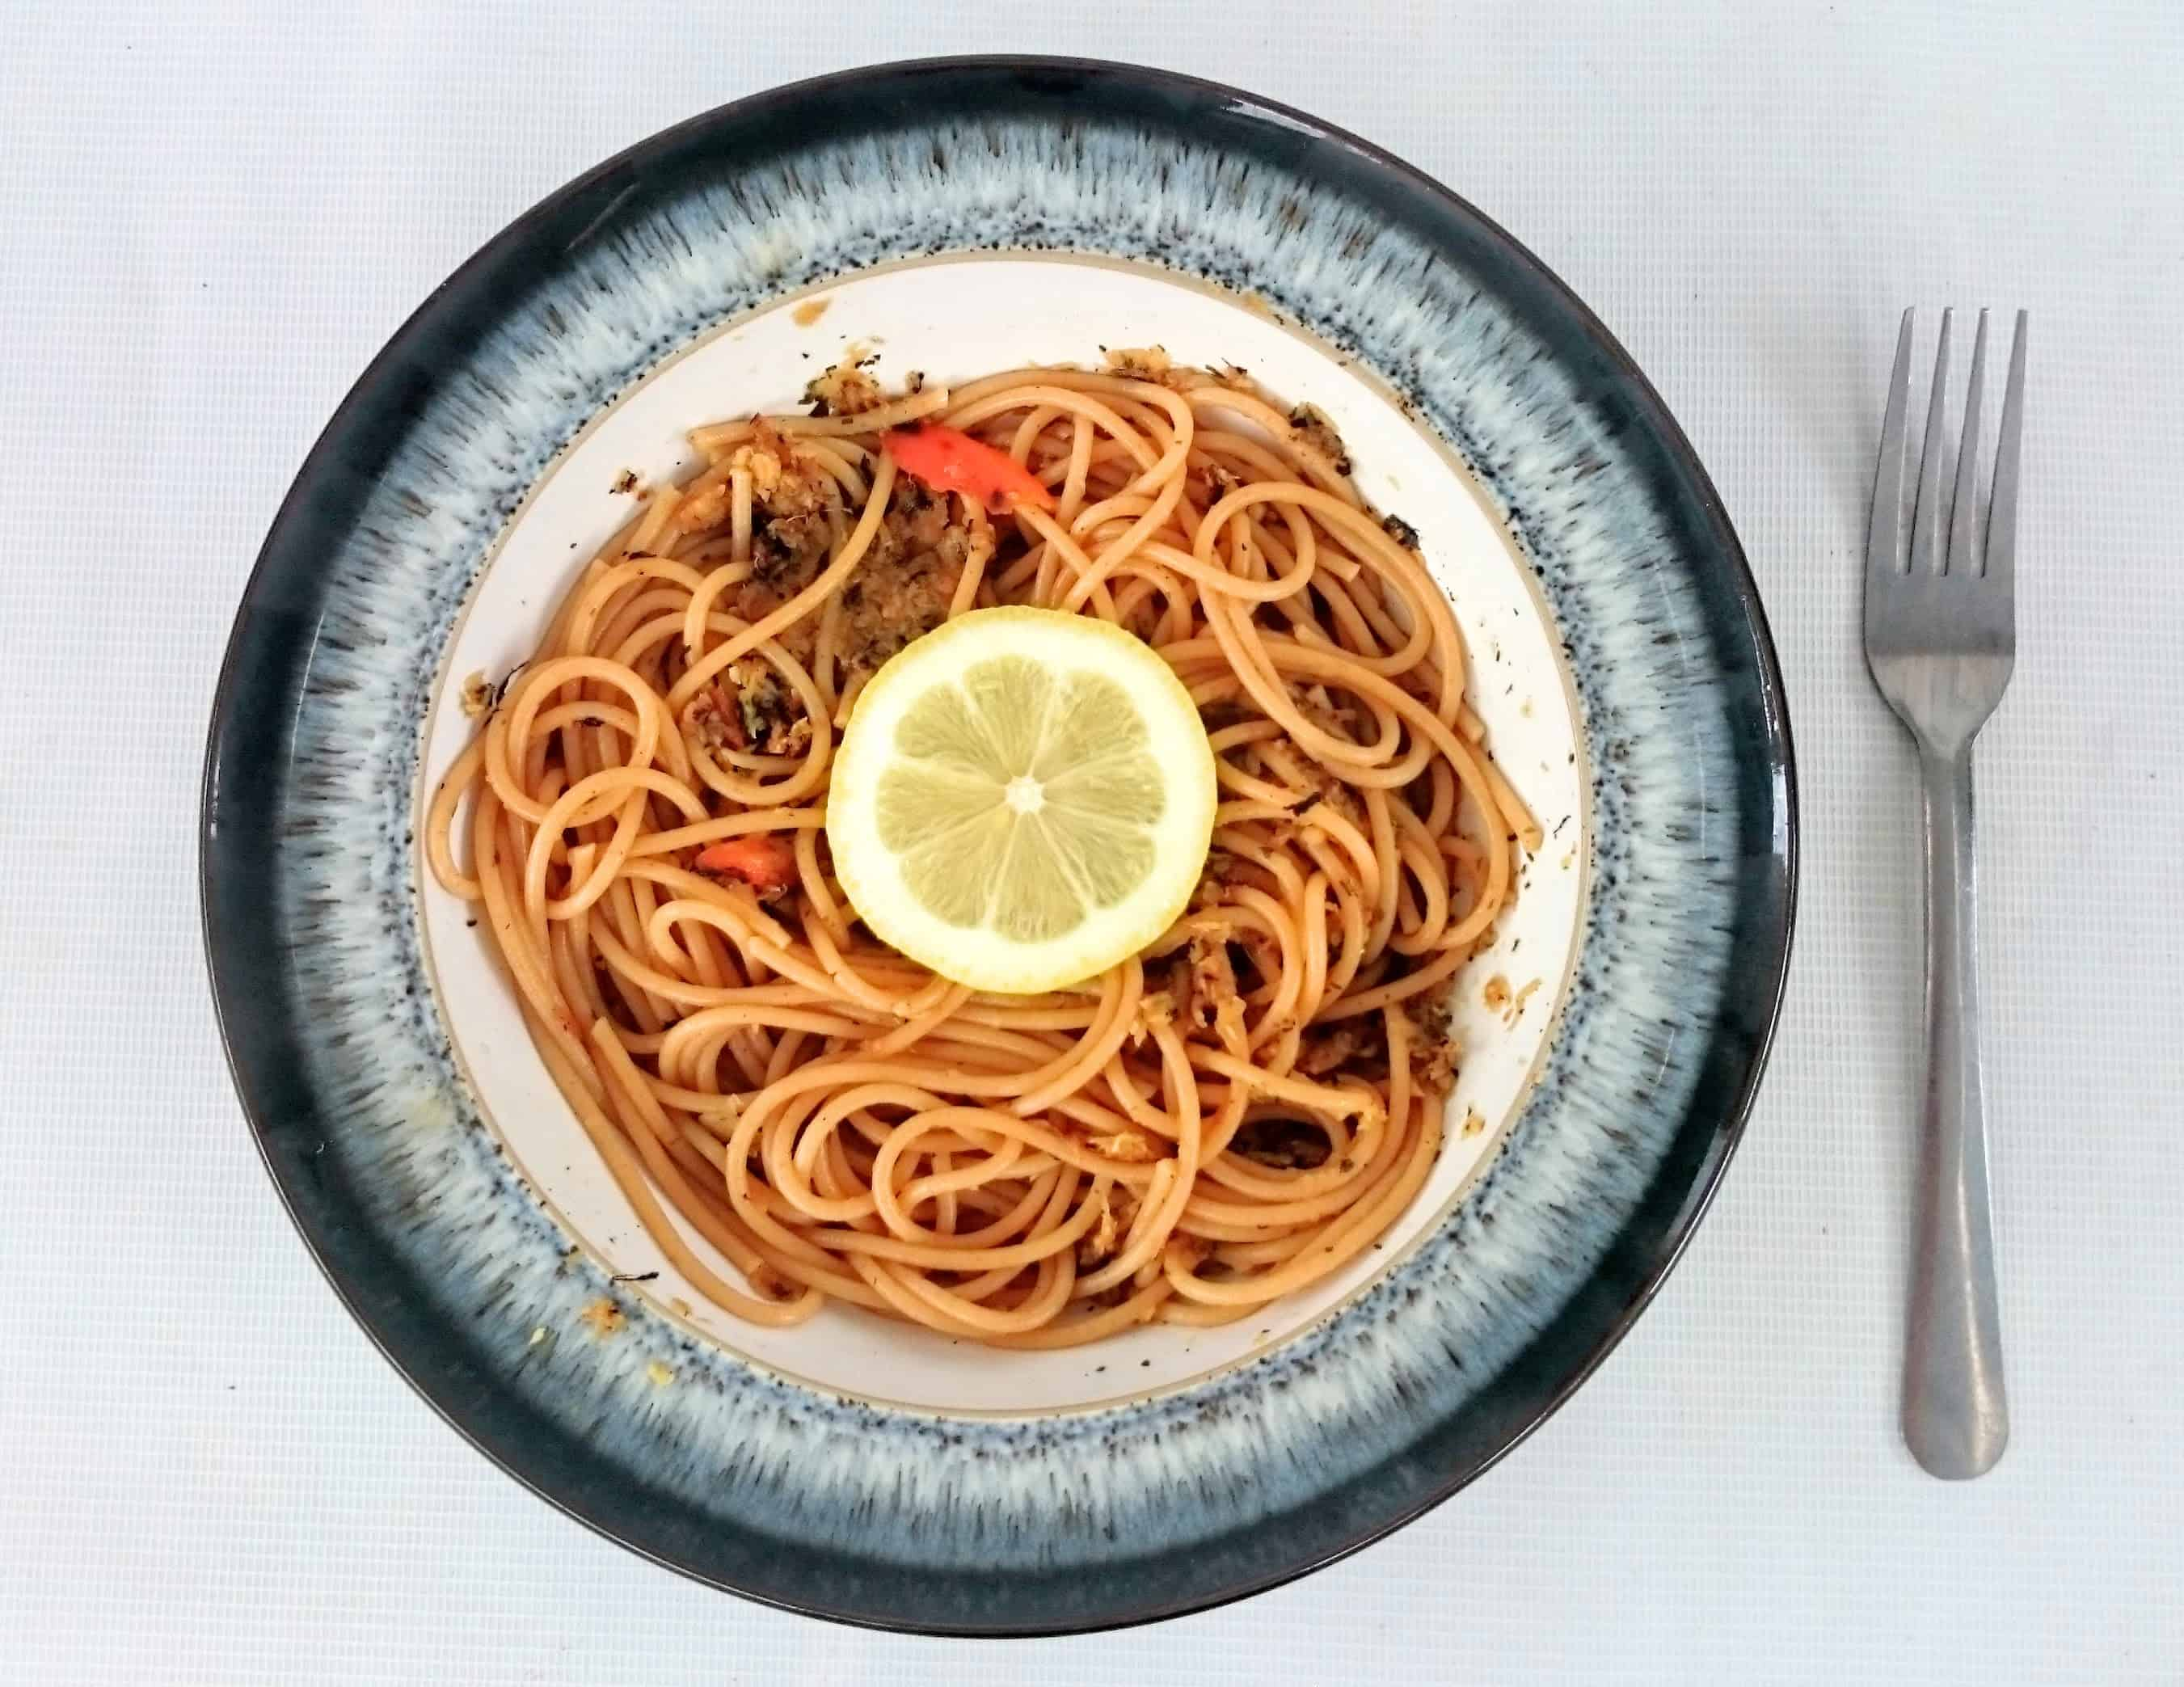 Slimming World Vegetarian & Vegan Syn Free Quick Parnsip, Ginger & Lemon Spaghetti for One